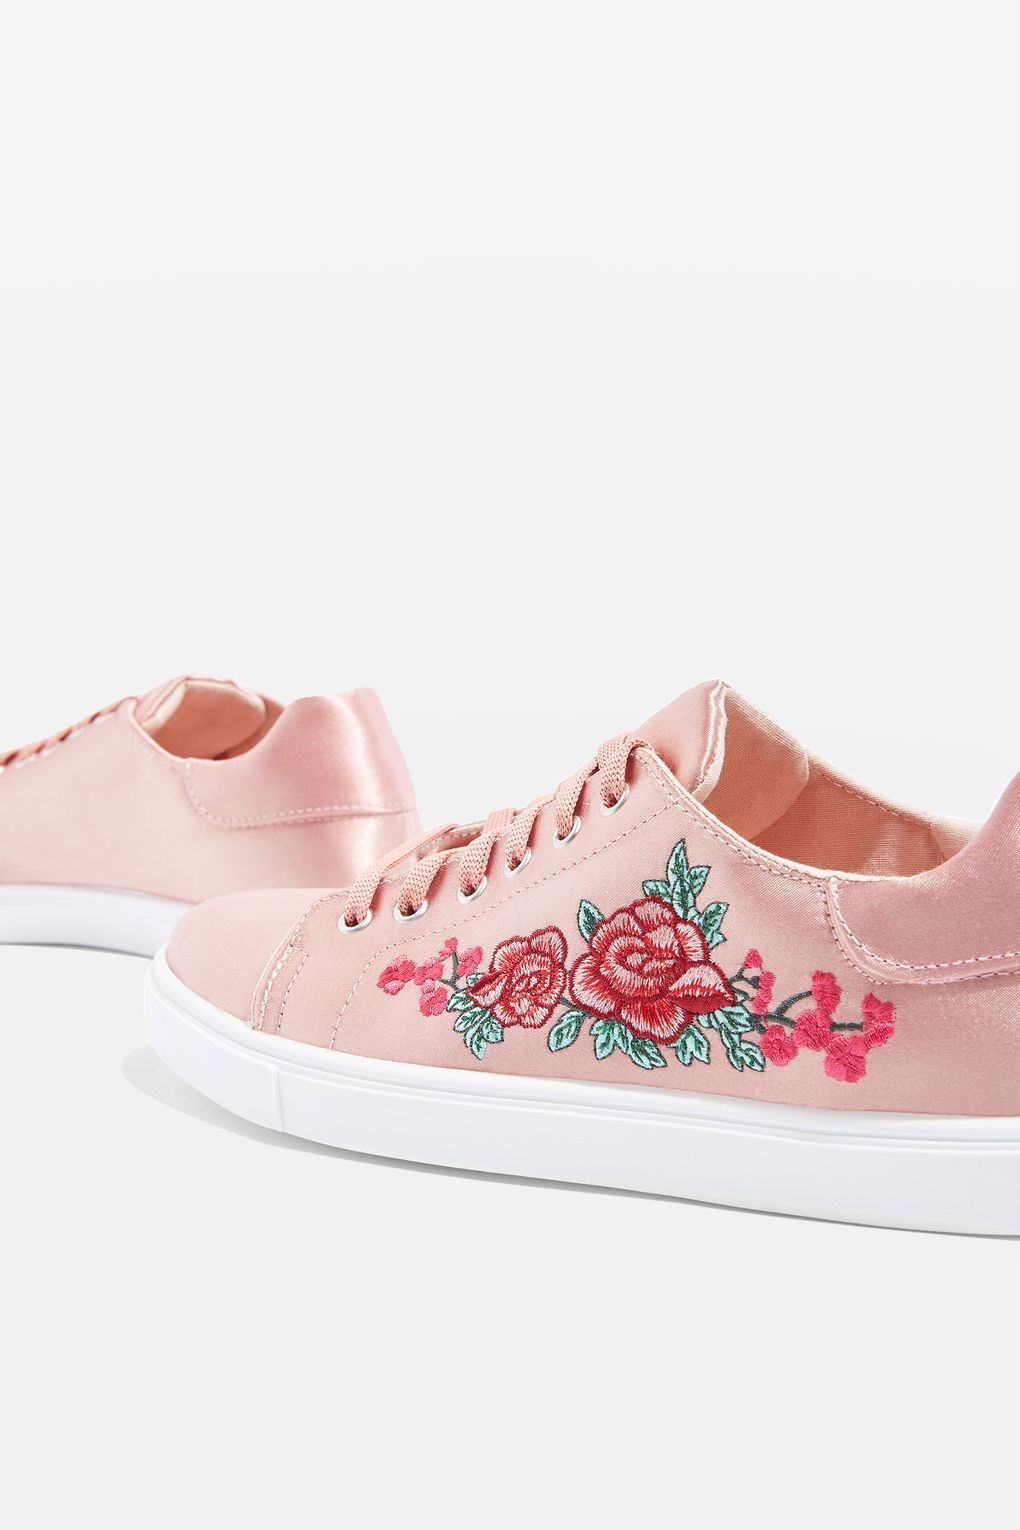 8beffe7c5 CAMILLA Embroidery Trainers en 2019 | Apparel | Shoes, Embroidery ...